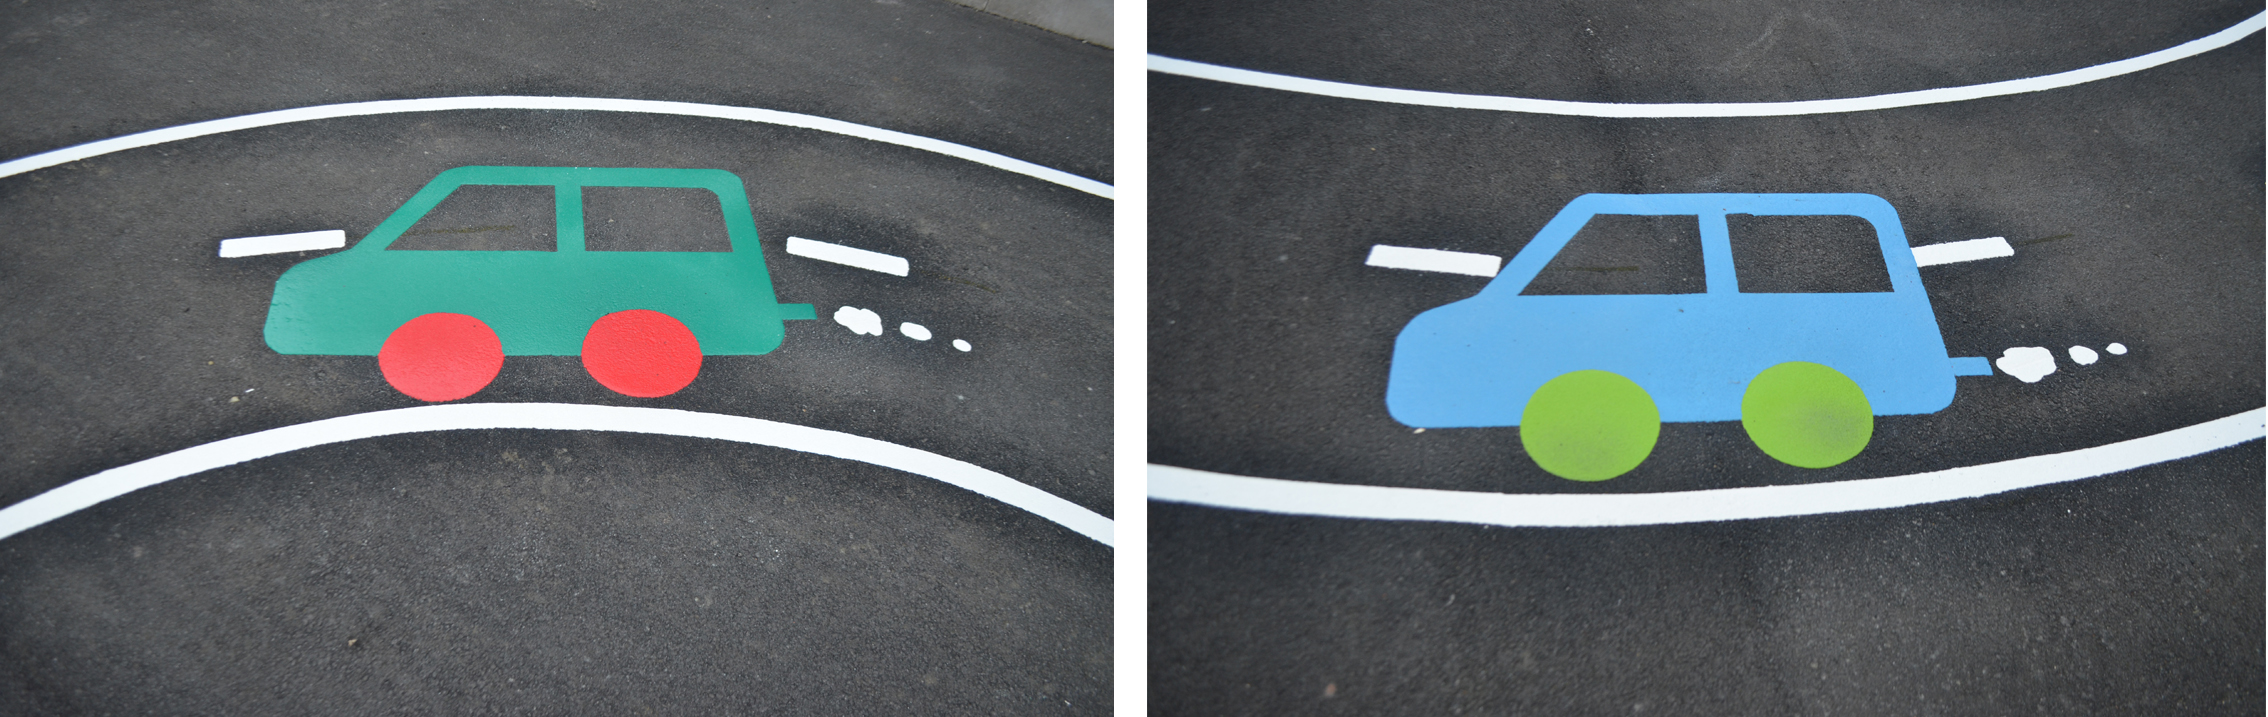 Playground markings cars